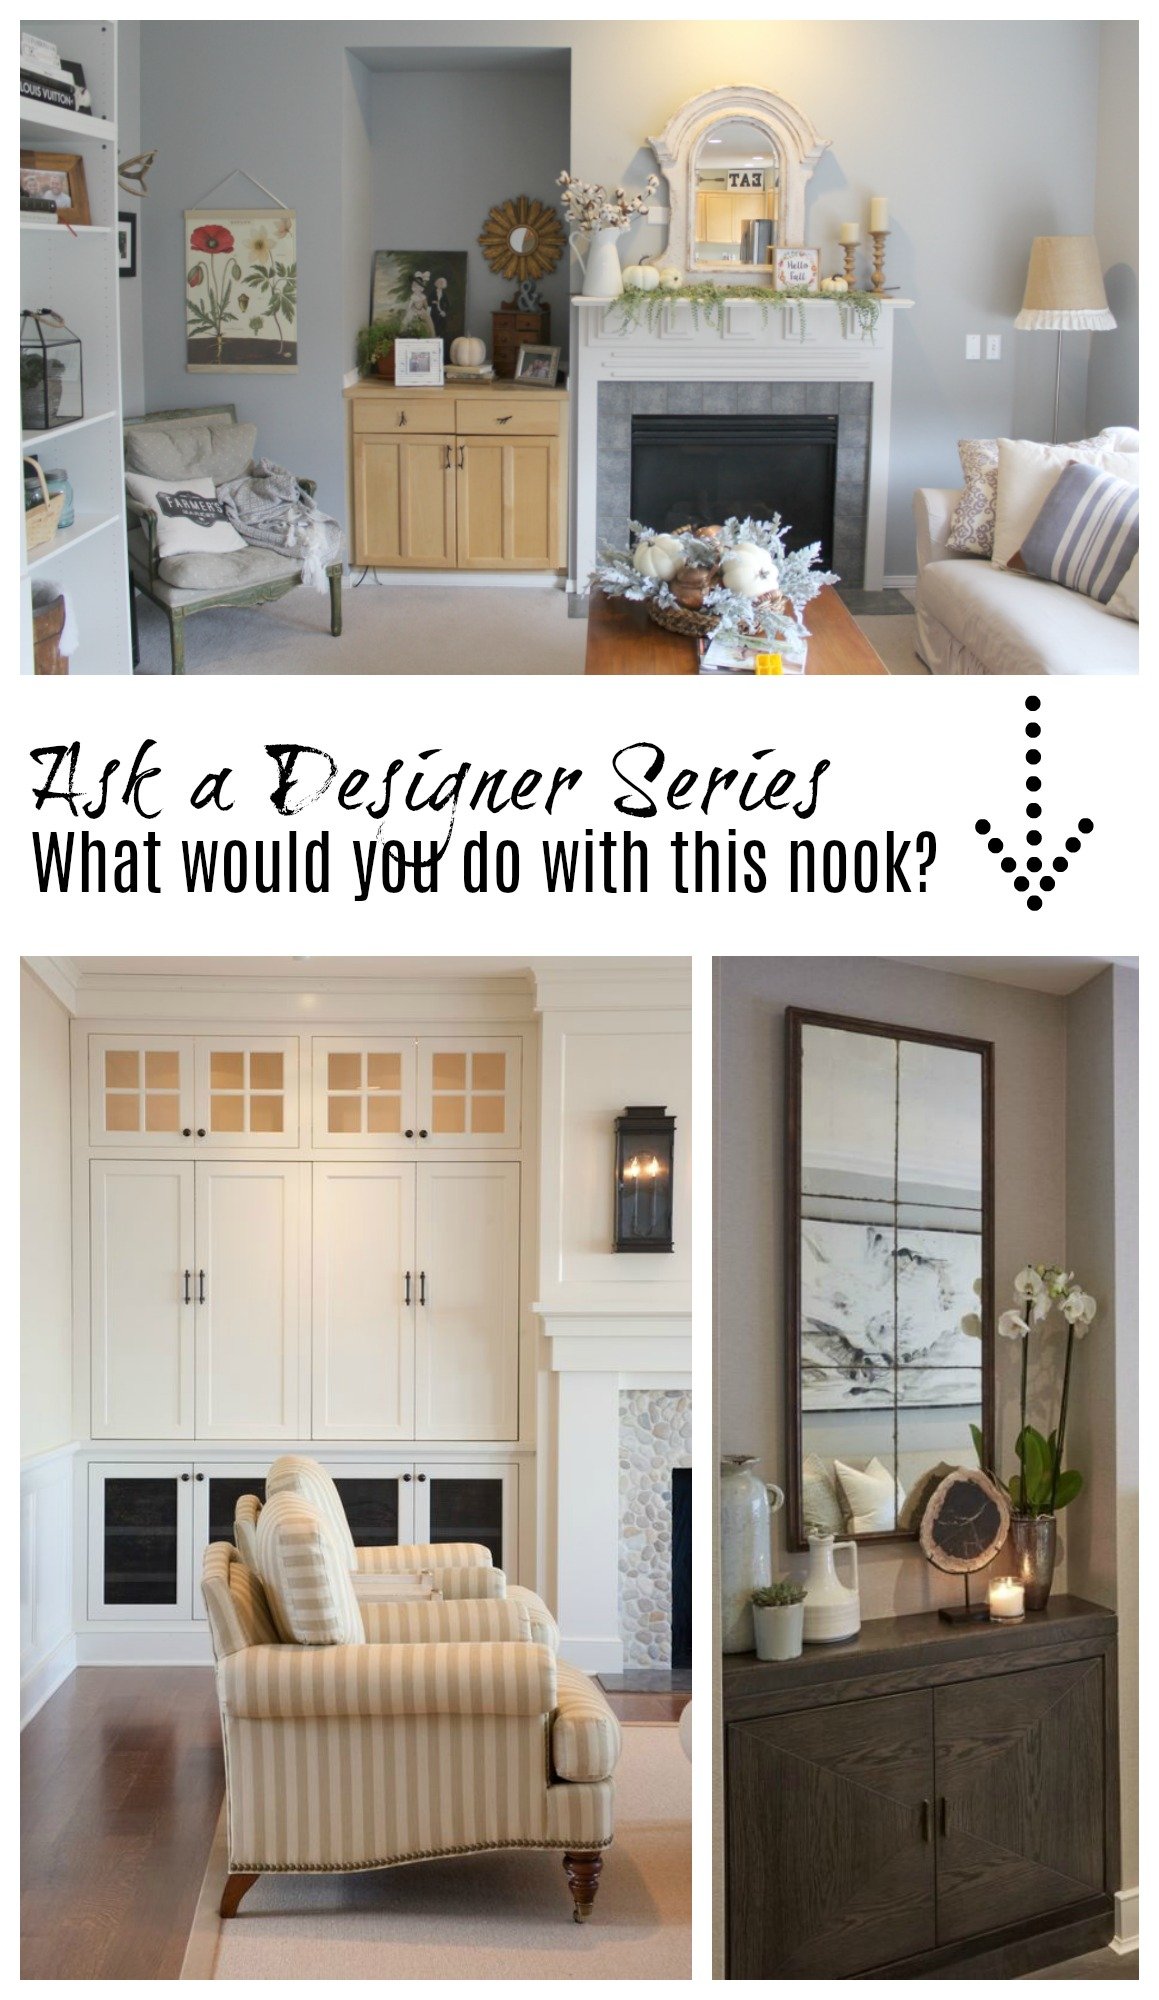 Ask a Designer Series- What would you suggest for this nook?